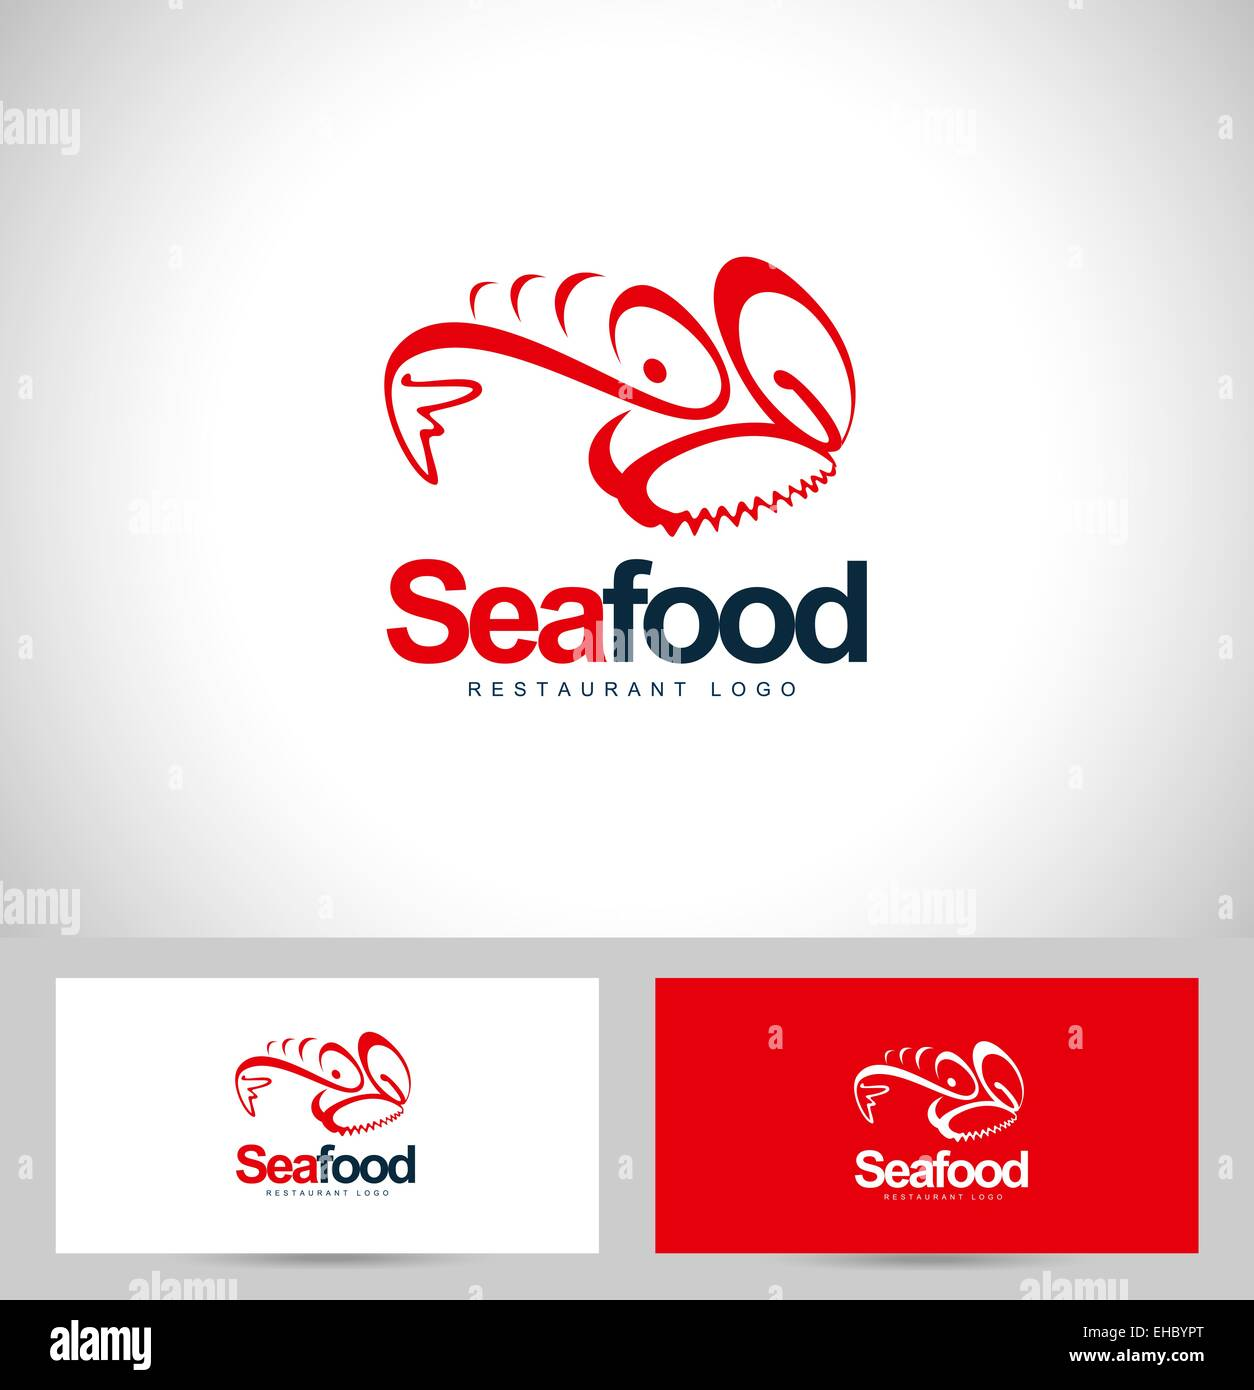 Seafood Restaurant Logo Design. Creative logo concept with ...